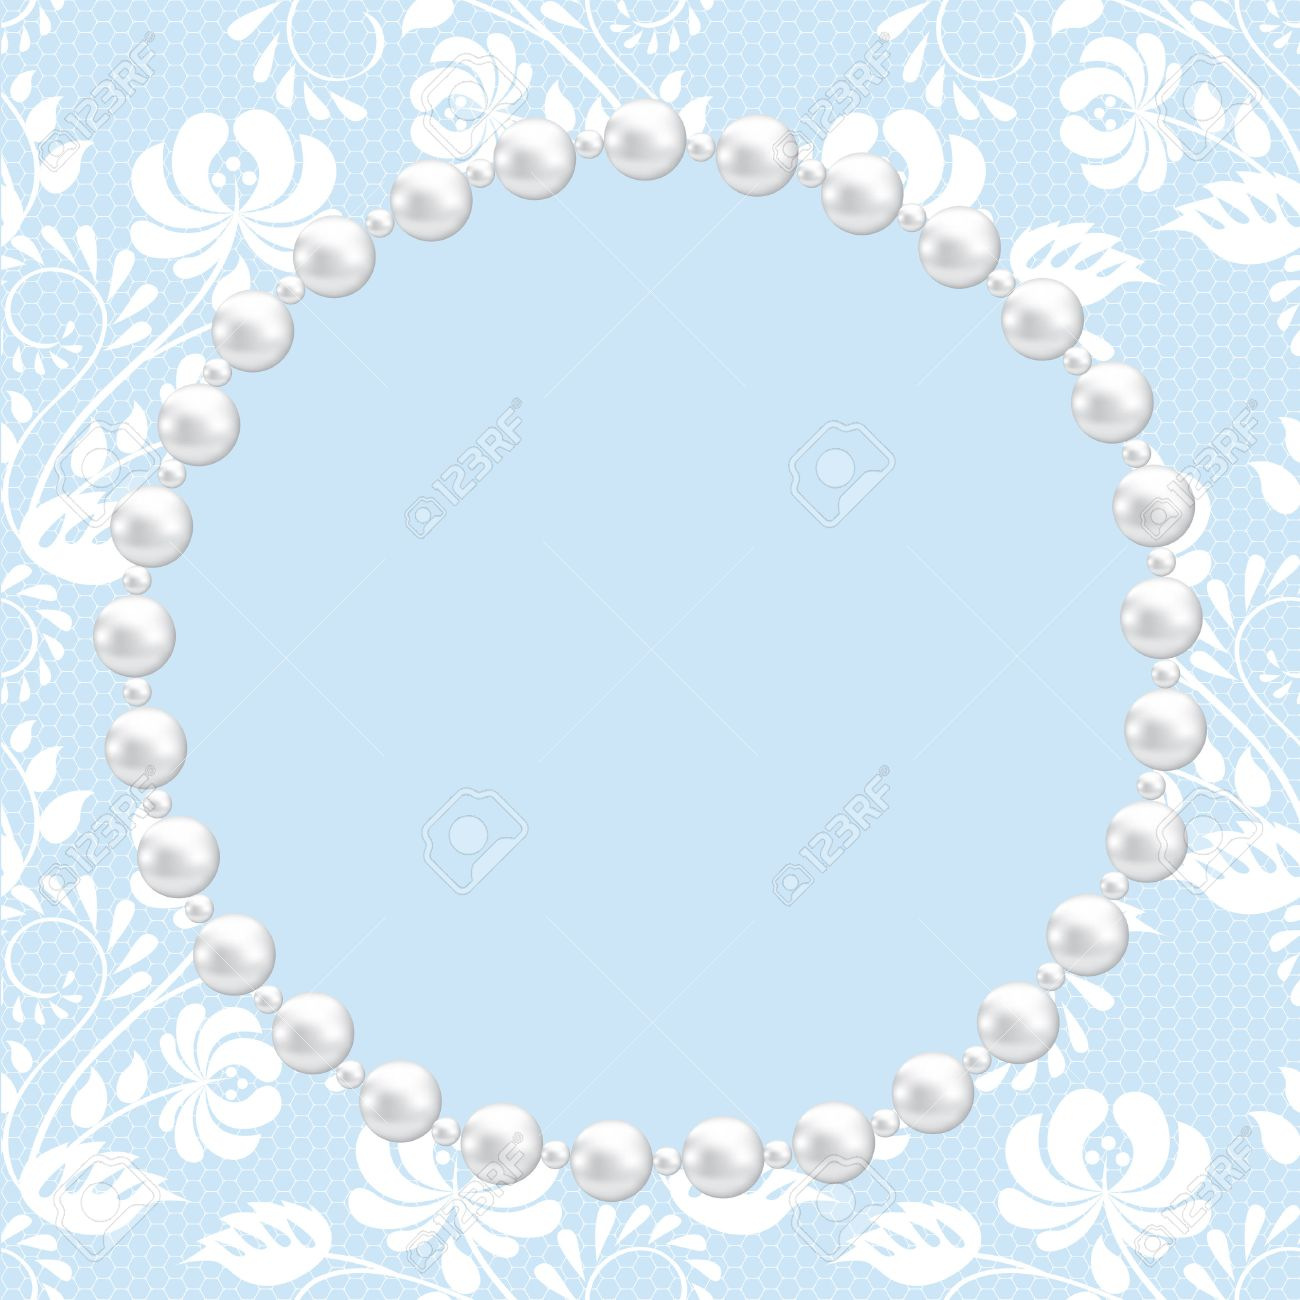 template for wedding greeting or invitation card with lace and